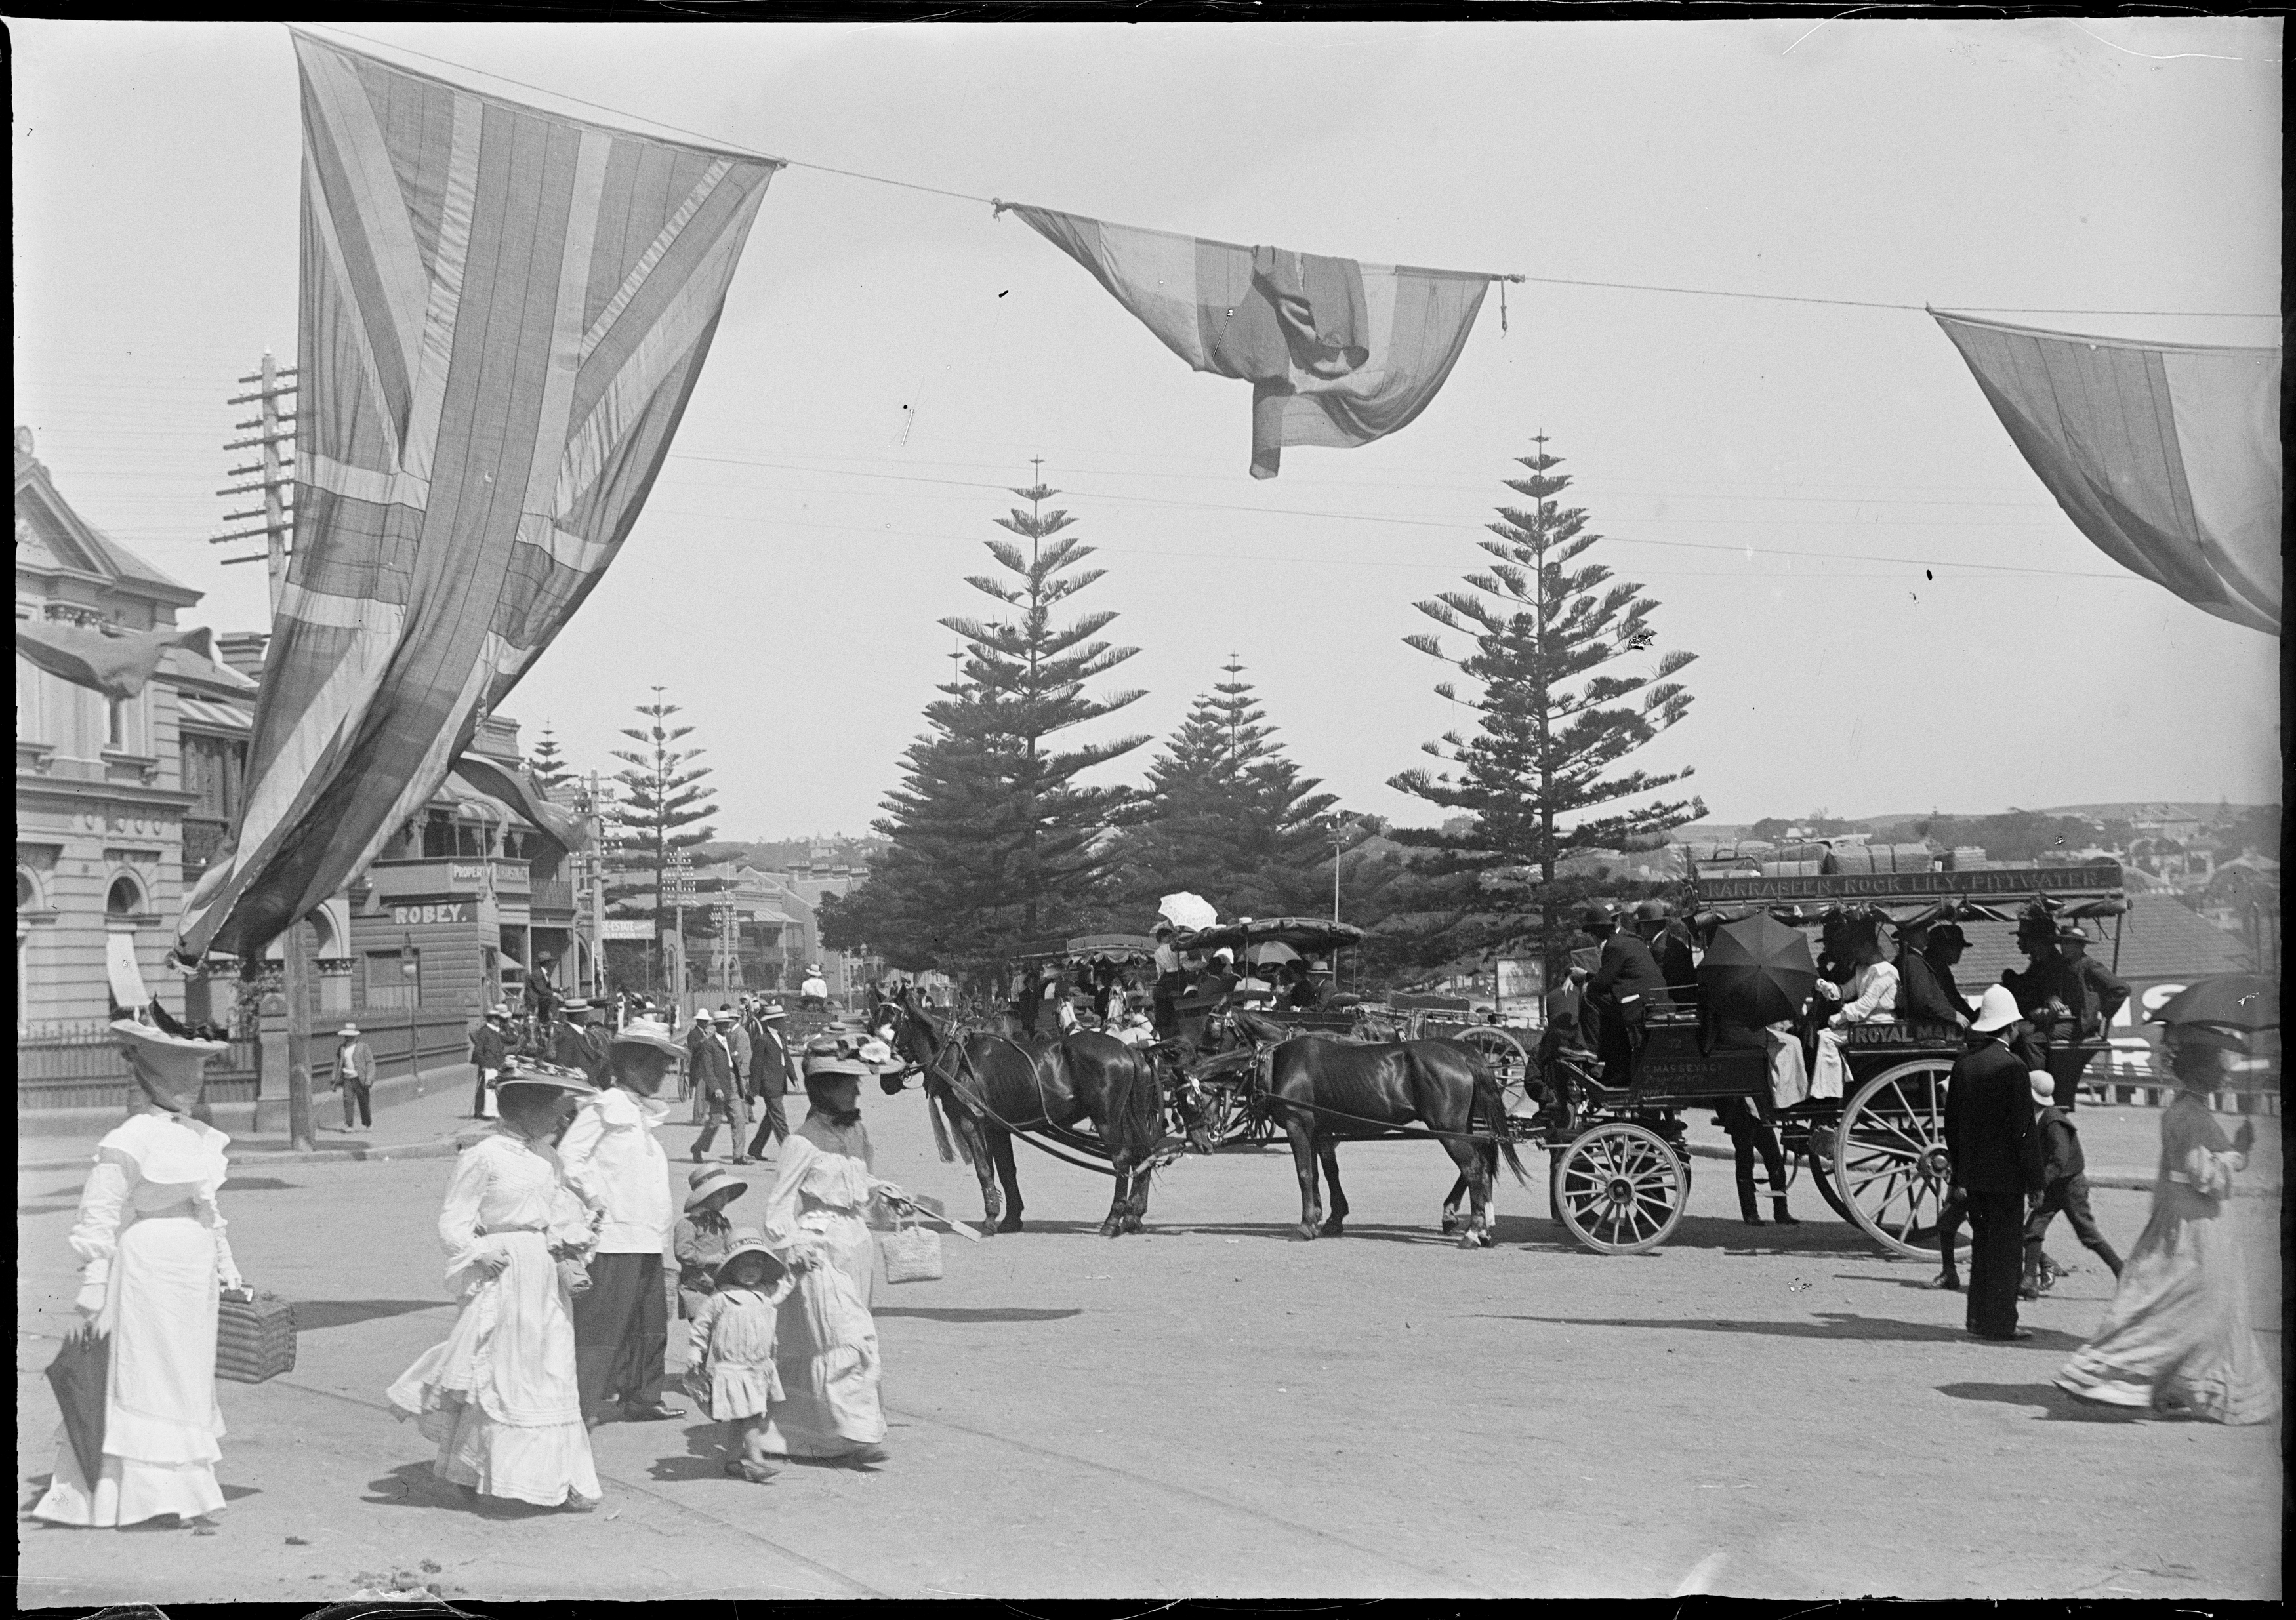 Omnibus to Narrabeen/Rock Lily, with beach goers at Manly